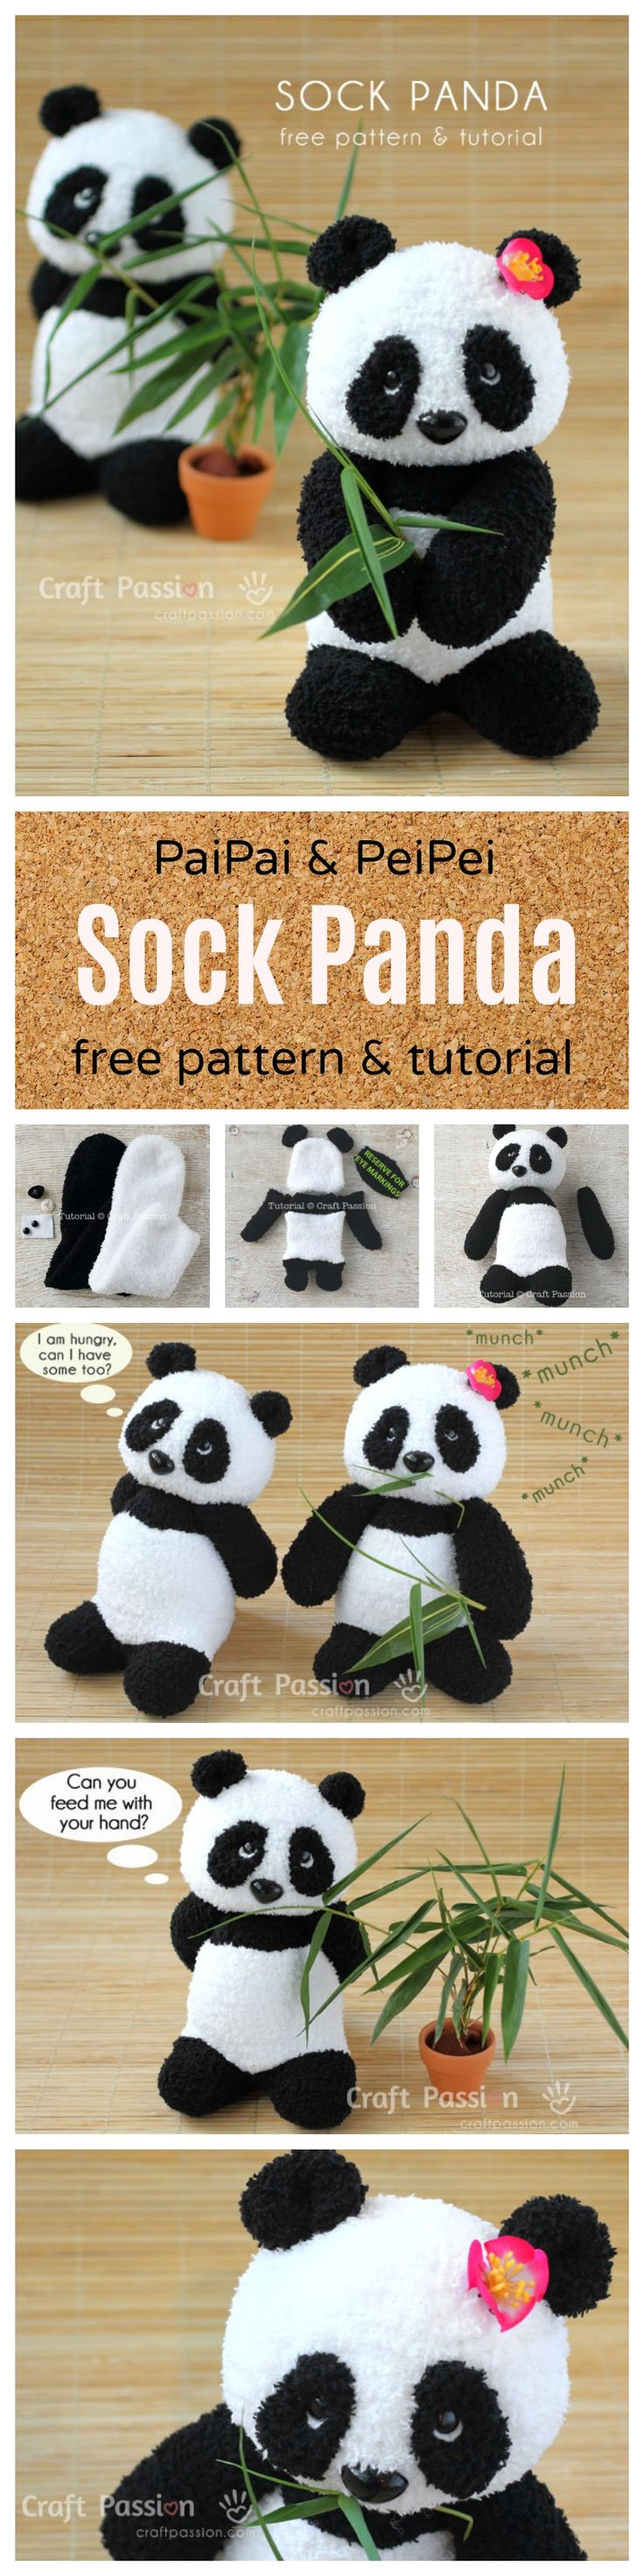 697 best Sew Sew No Sew images on Pinterest